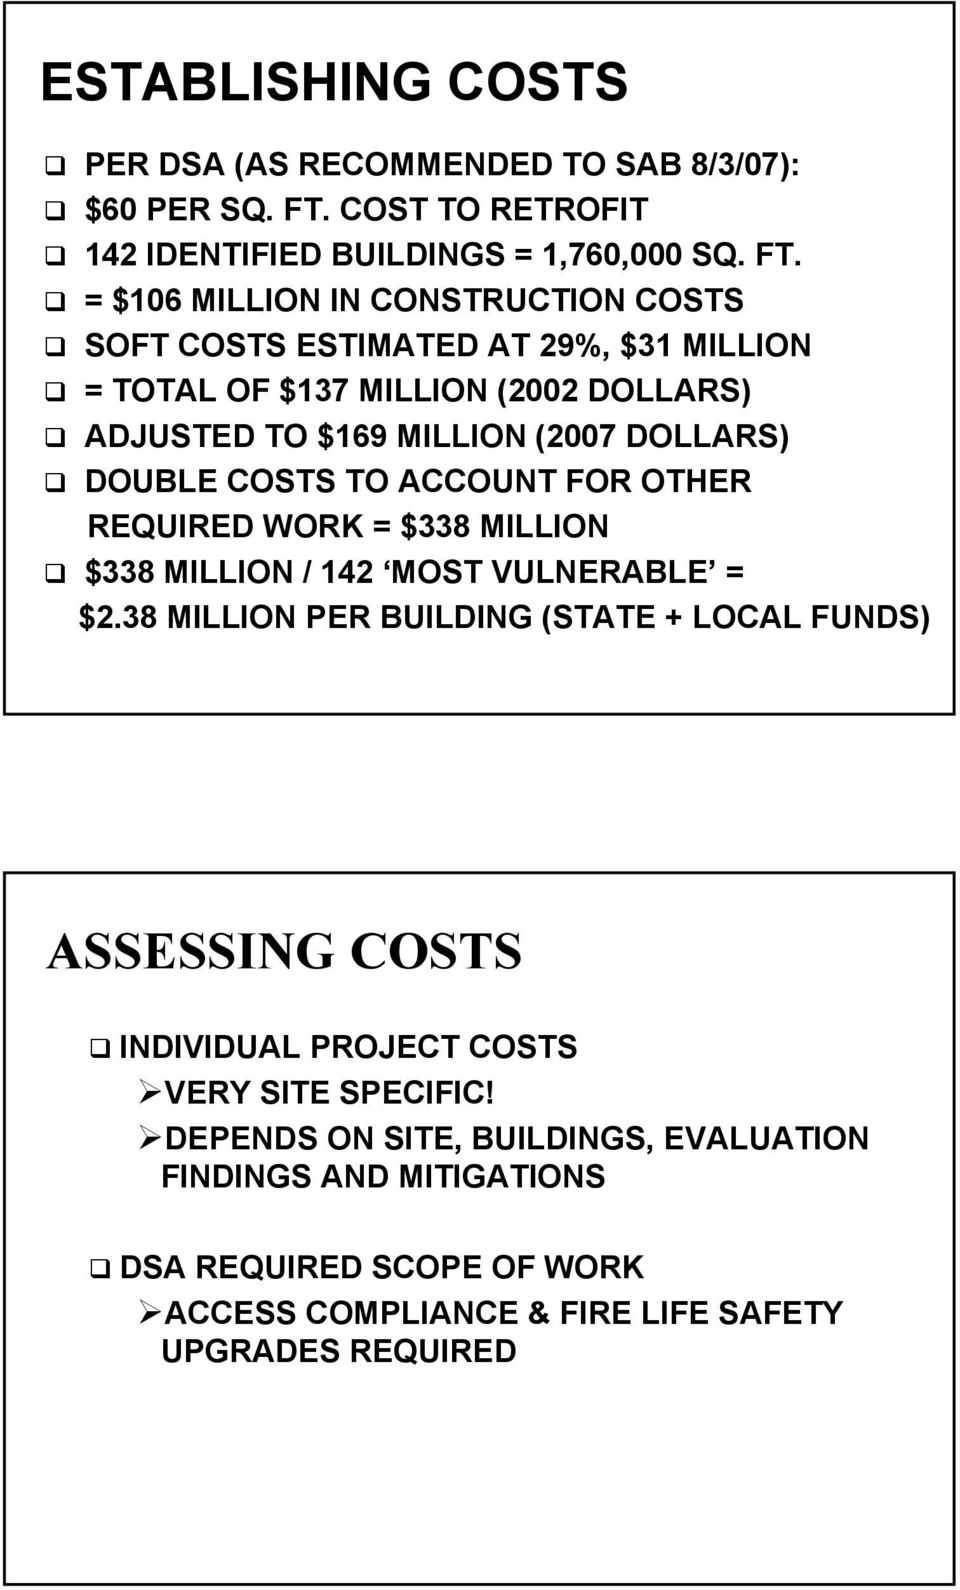 = $106 MILLION IN CONSTRUCTION COSTS SOFT COSTS ESTIMATED AT 29%, $31 MILLION = TOTAL OF $137 MILLION (2002 DOLLARS) ADJUSTED TO $169 MILLION (2007 DOLLARS)